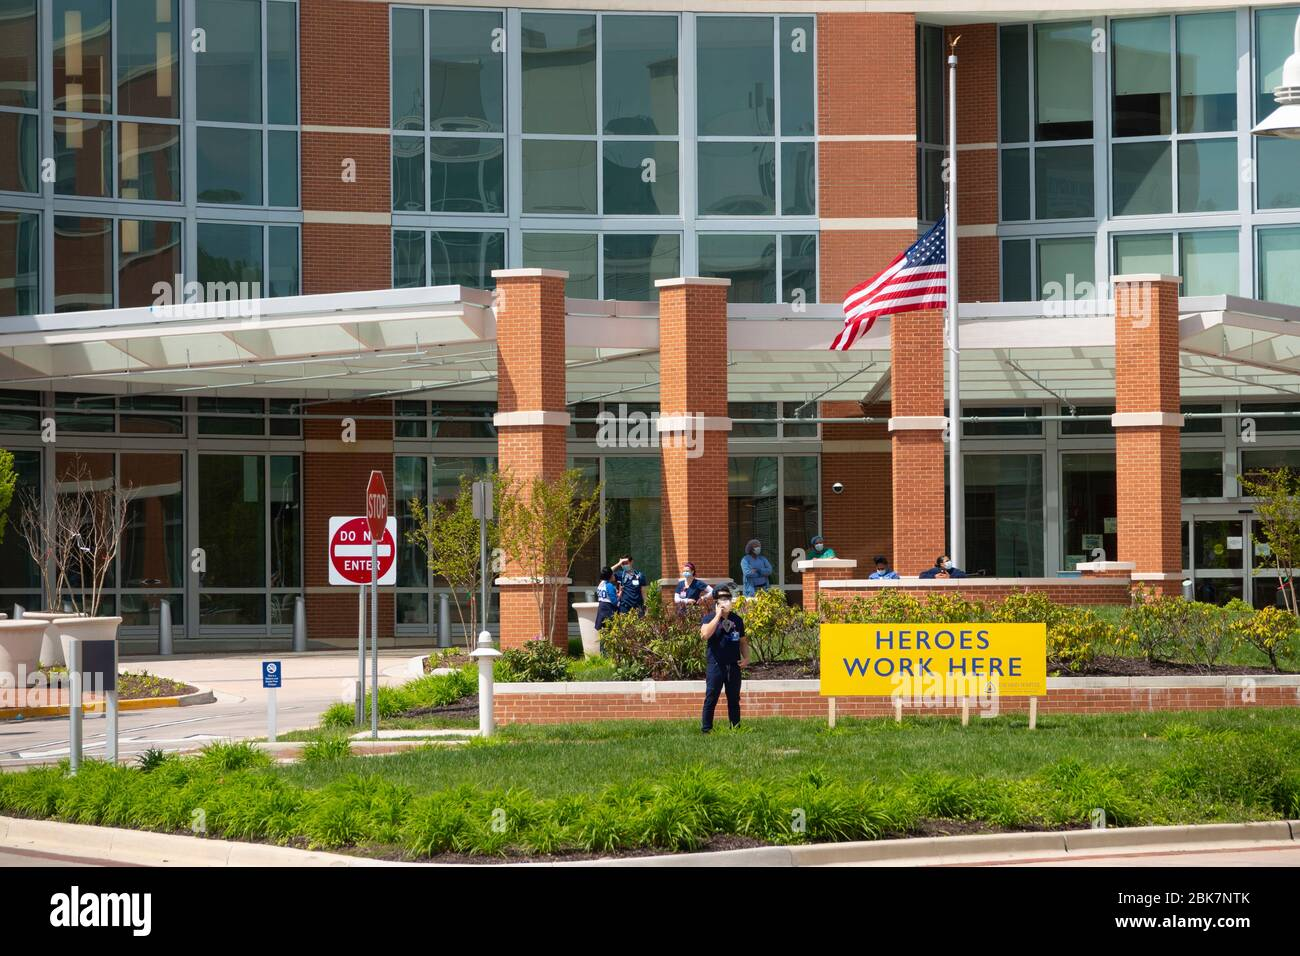 USA Bethesda Maryland MD Suburban Hospital during the Corona Pandemic Stock Photo